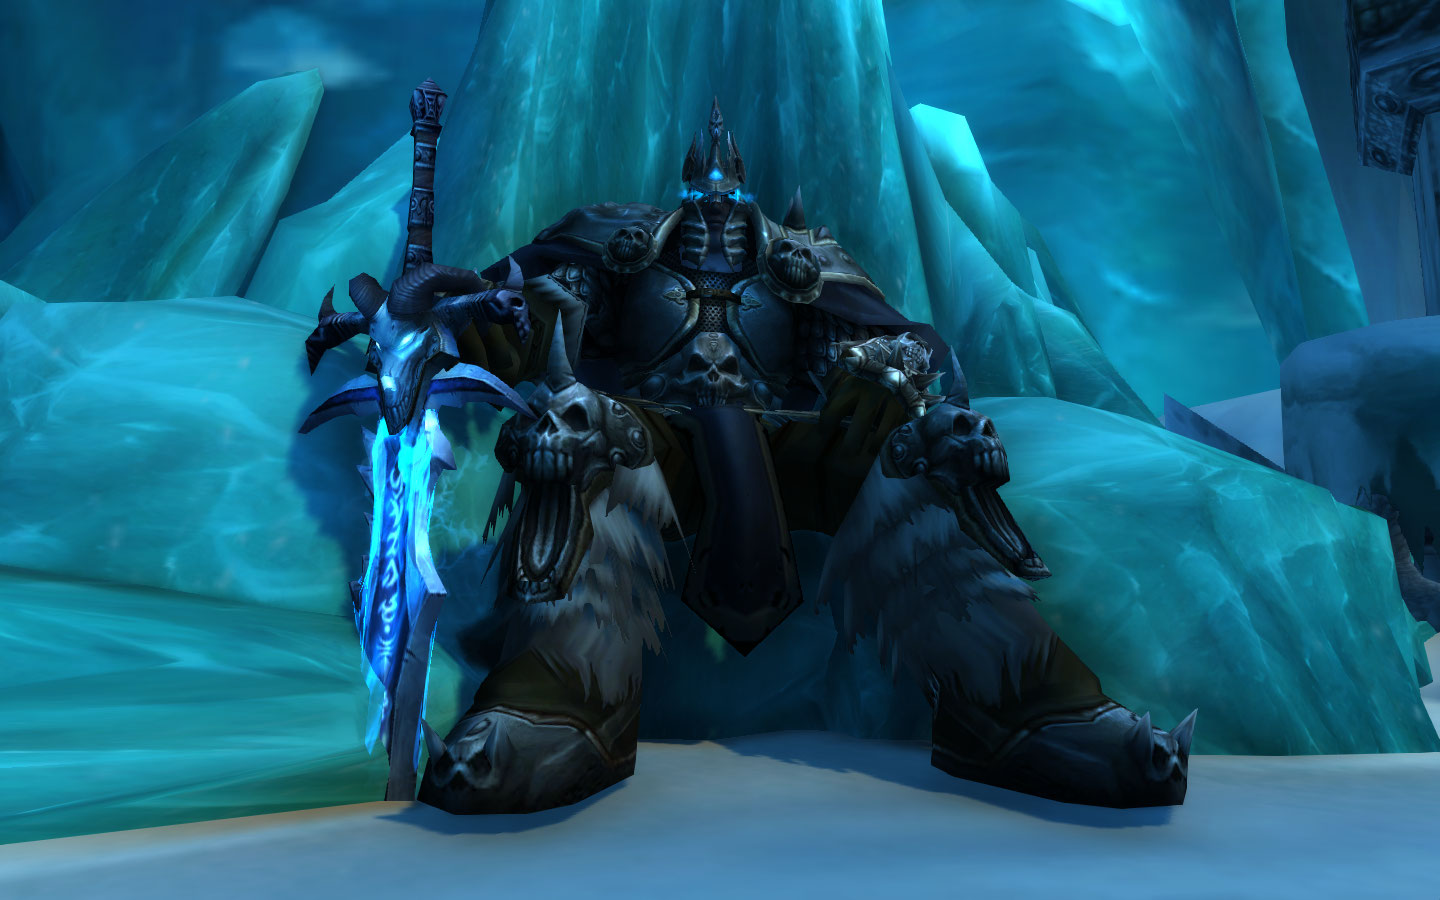 Why Hearthstone S Frozen Throne Expansion Matters To Warcraft Fans